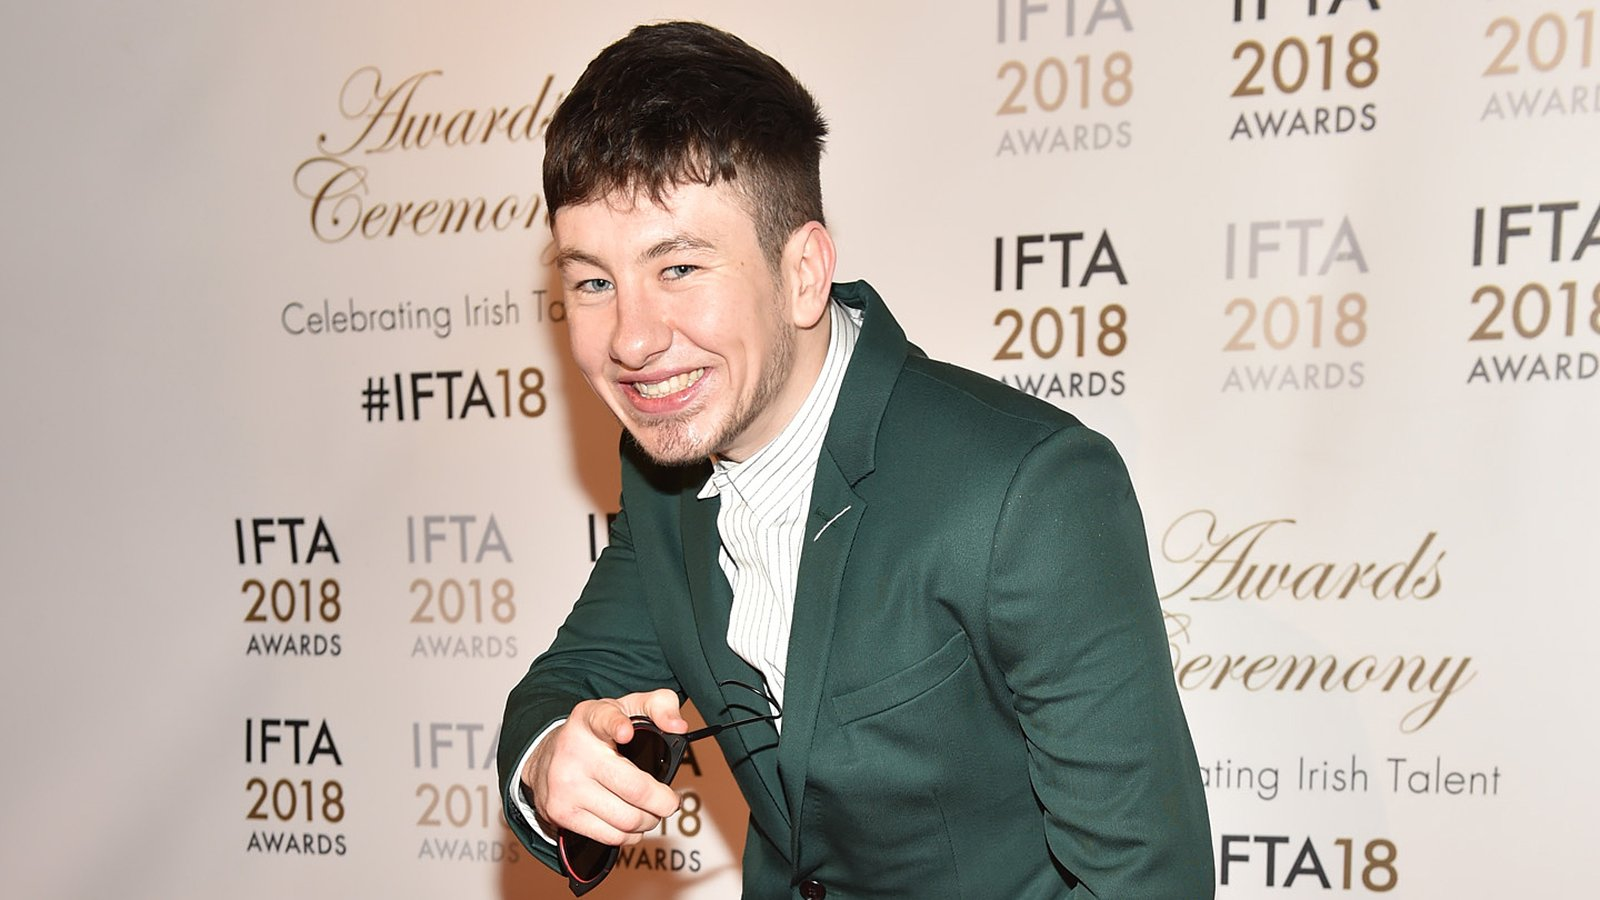 Barry Keoghan IFTA 2018